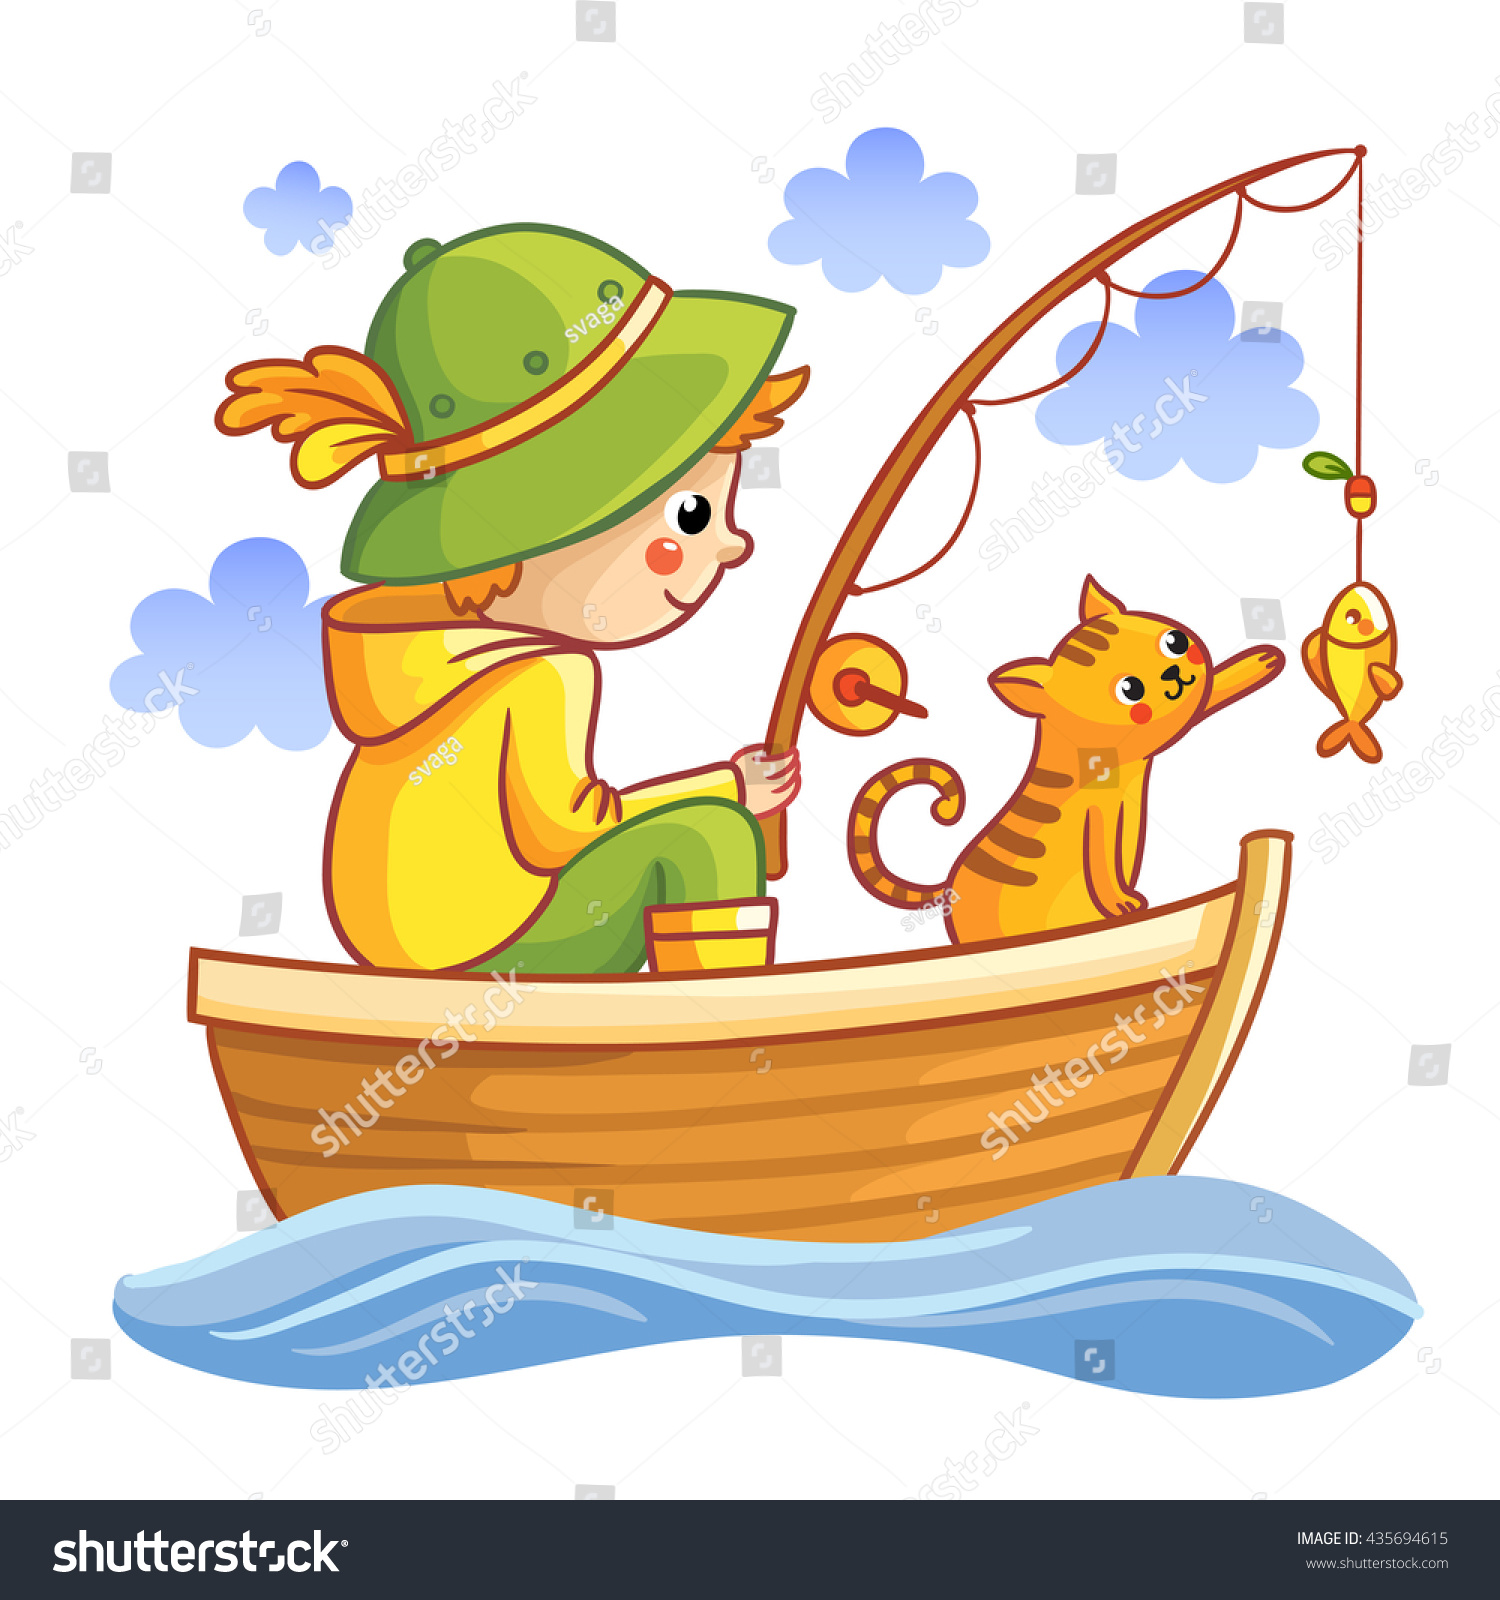 how to draw a fisherman in a boat